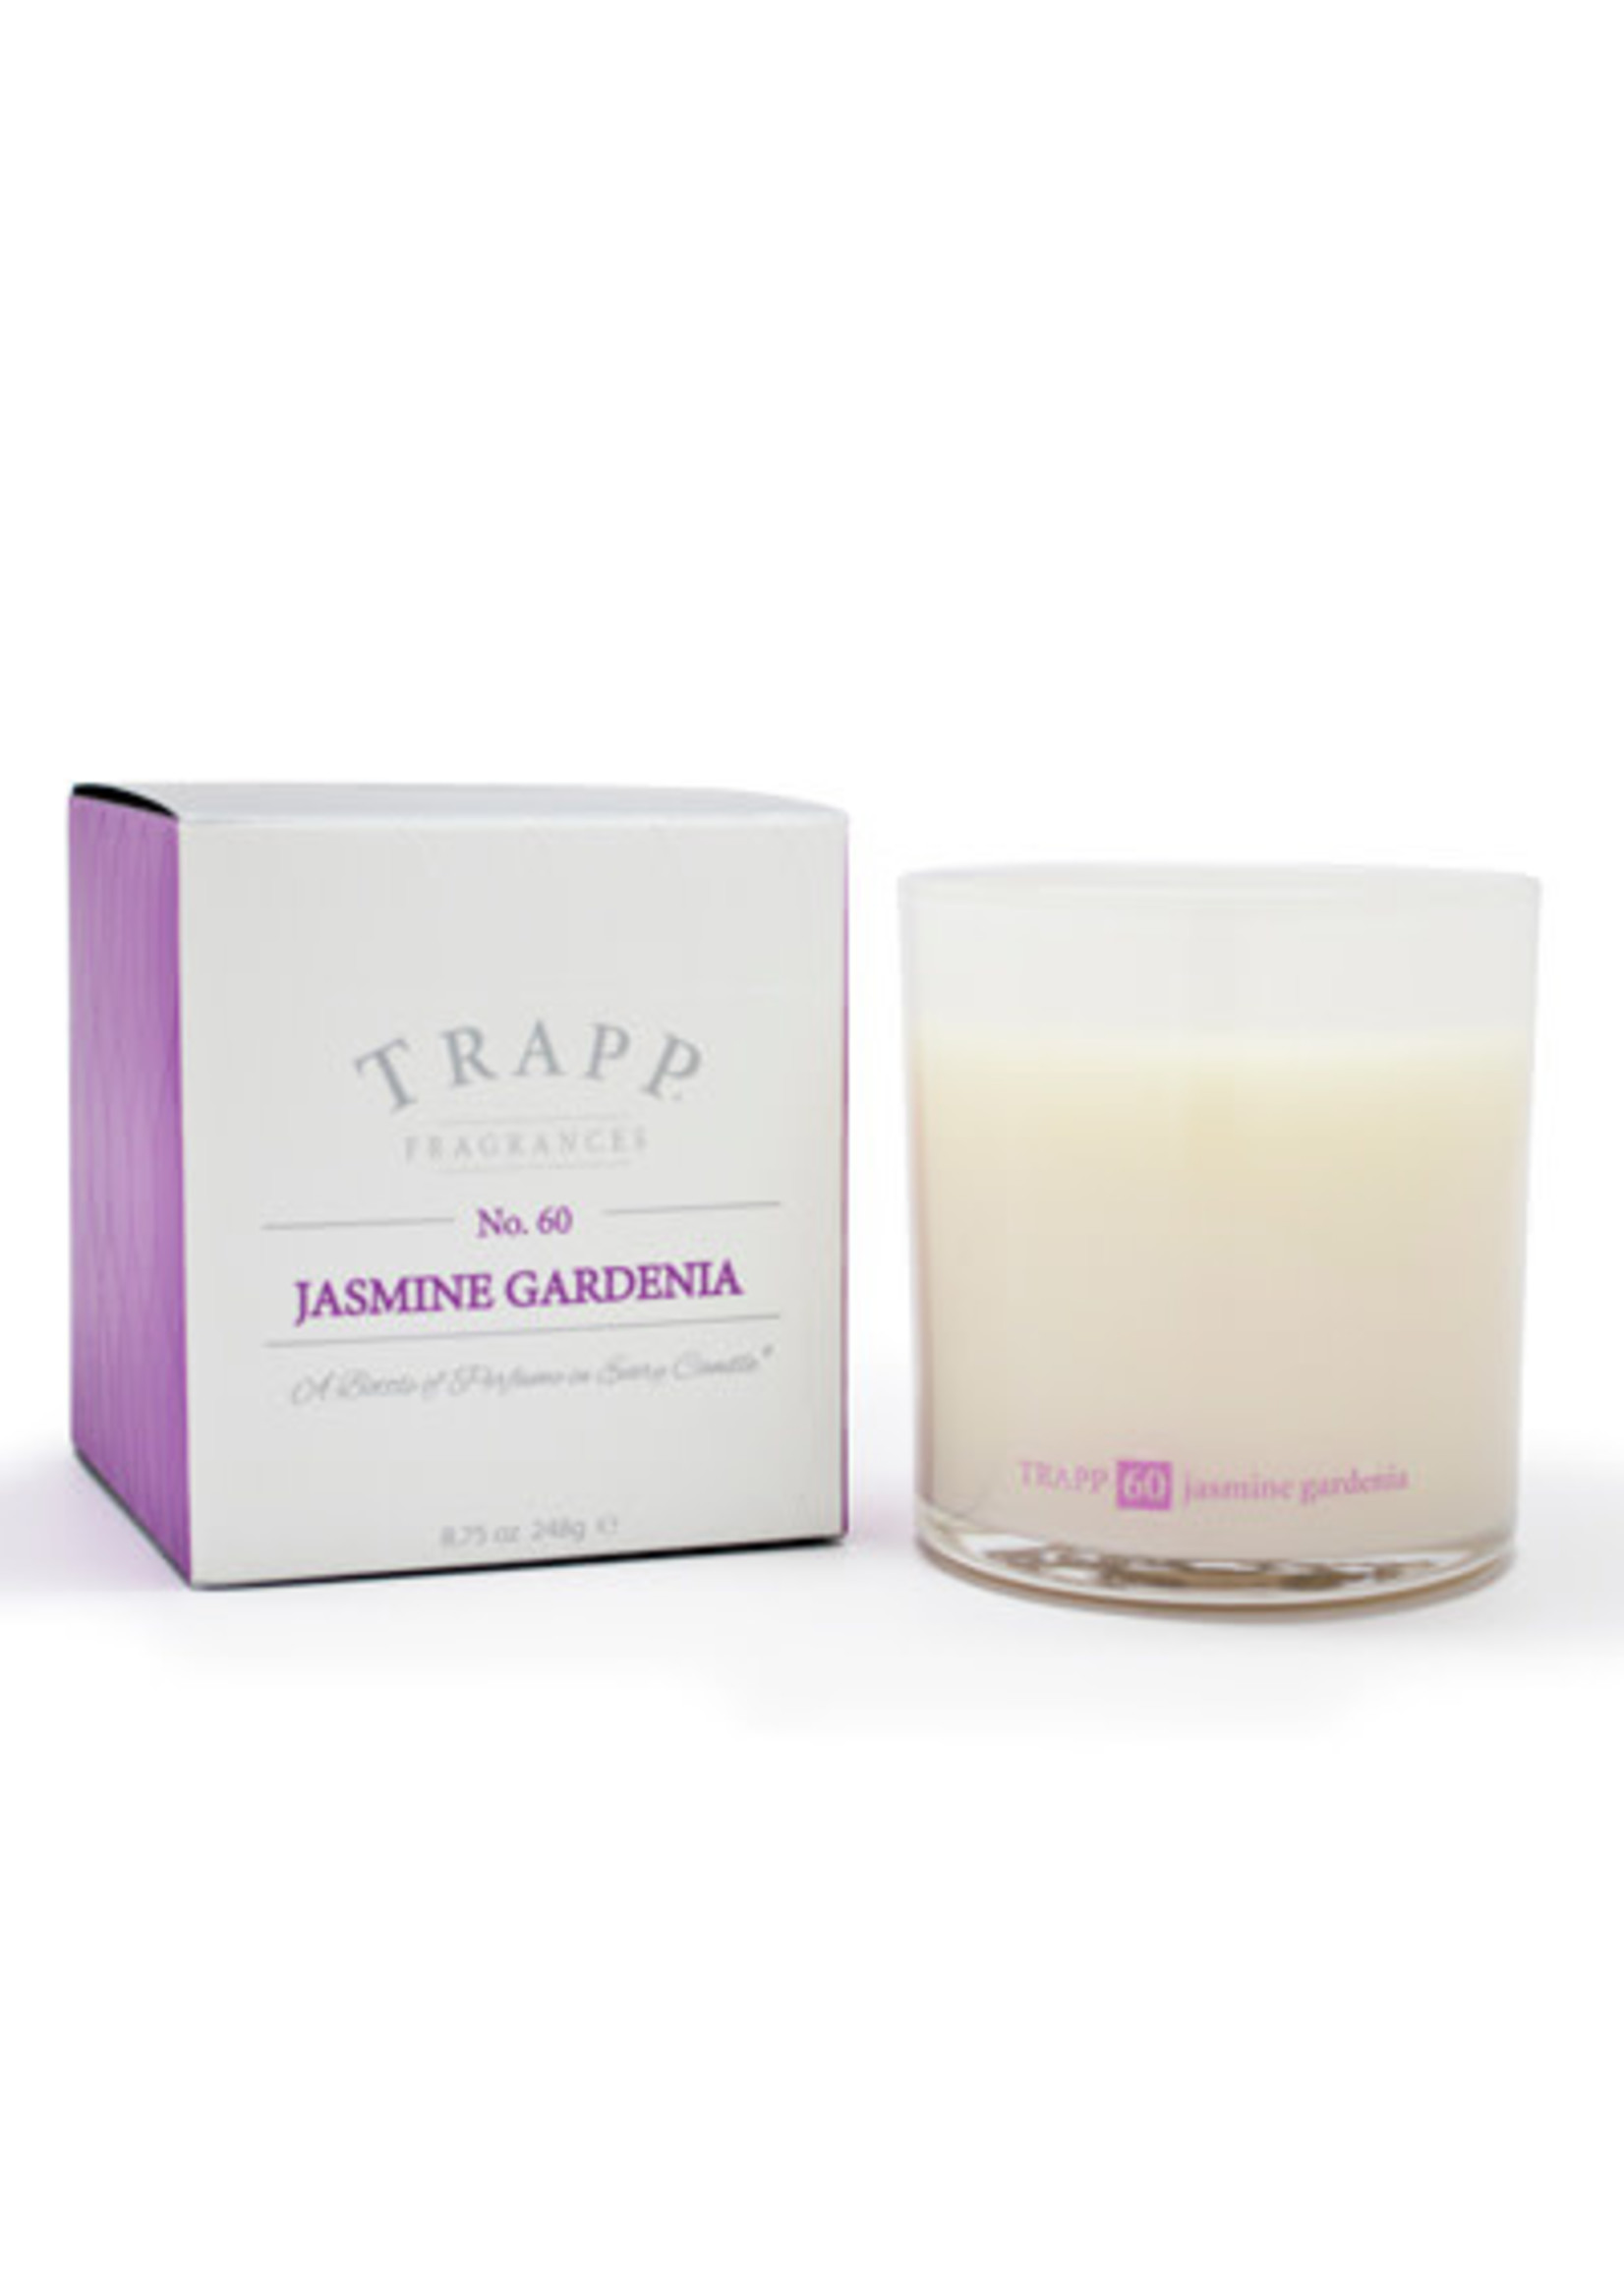 Trapp Candles Ambiance Collection - No. 60 Jasmine Gardenia - 8.75 oz. Poured Candle